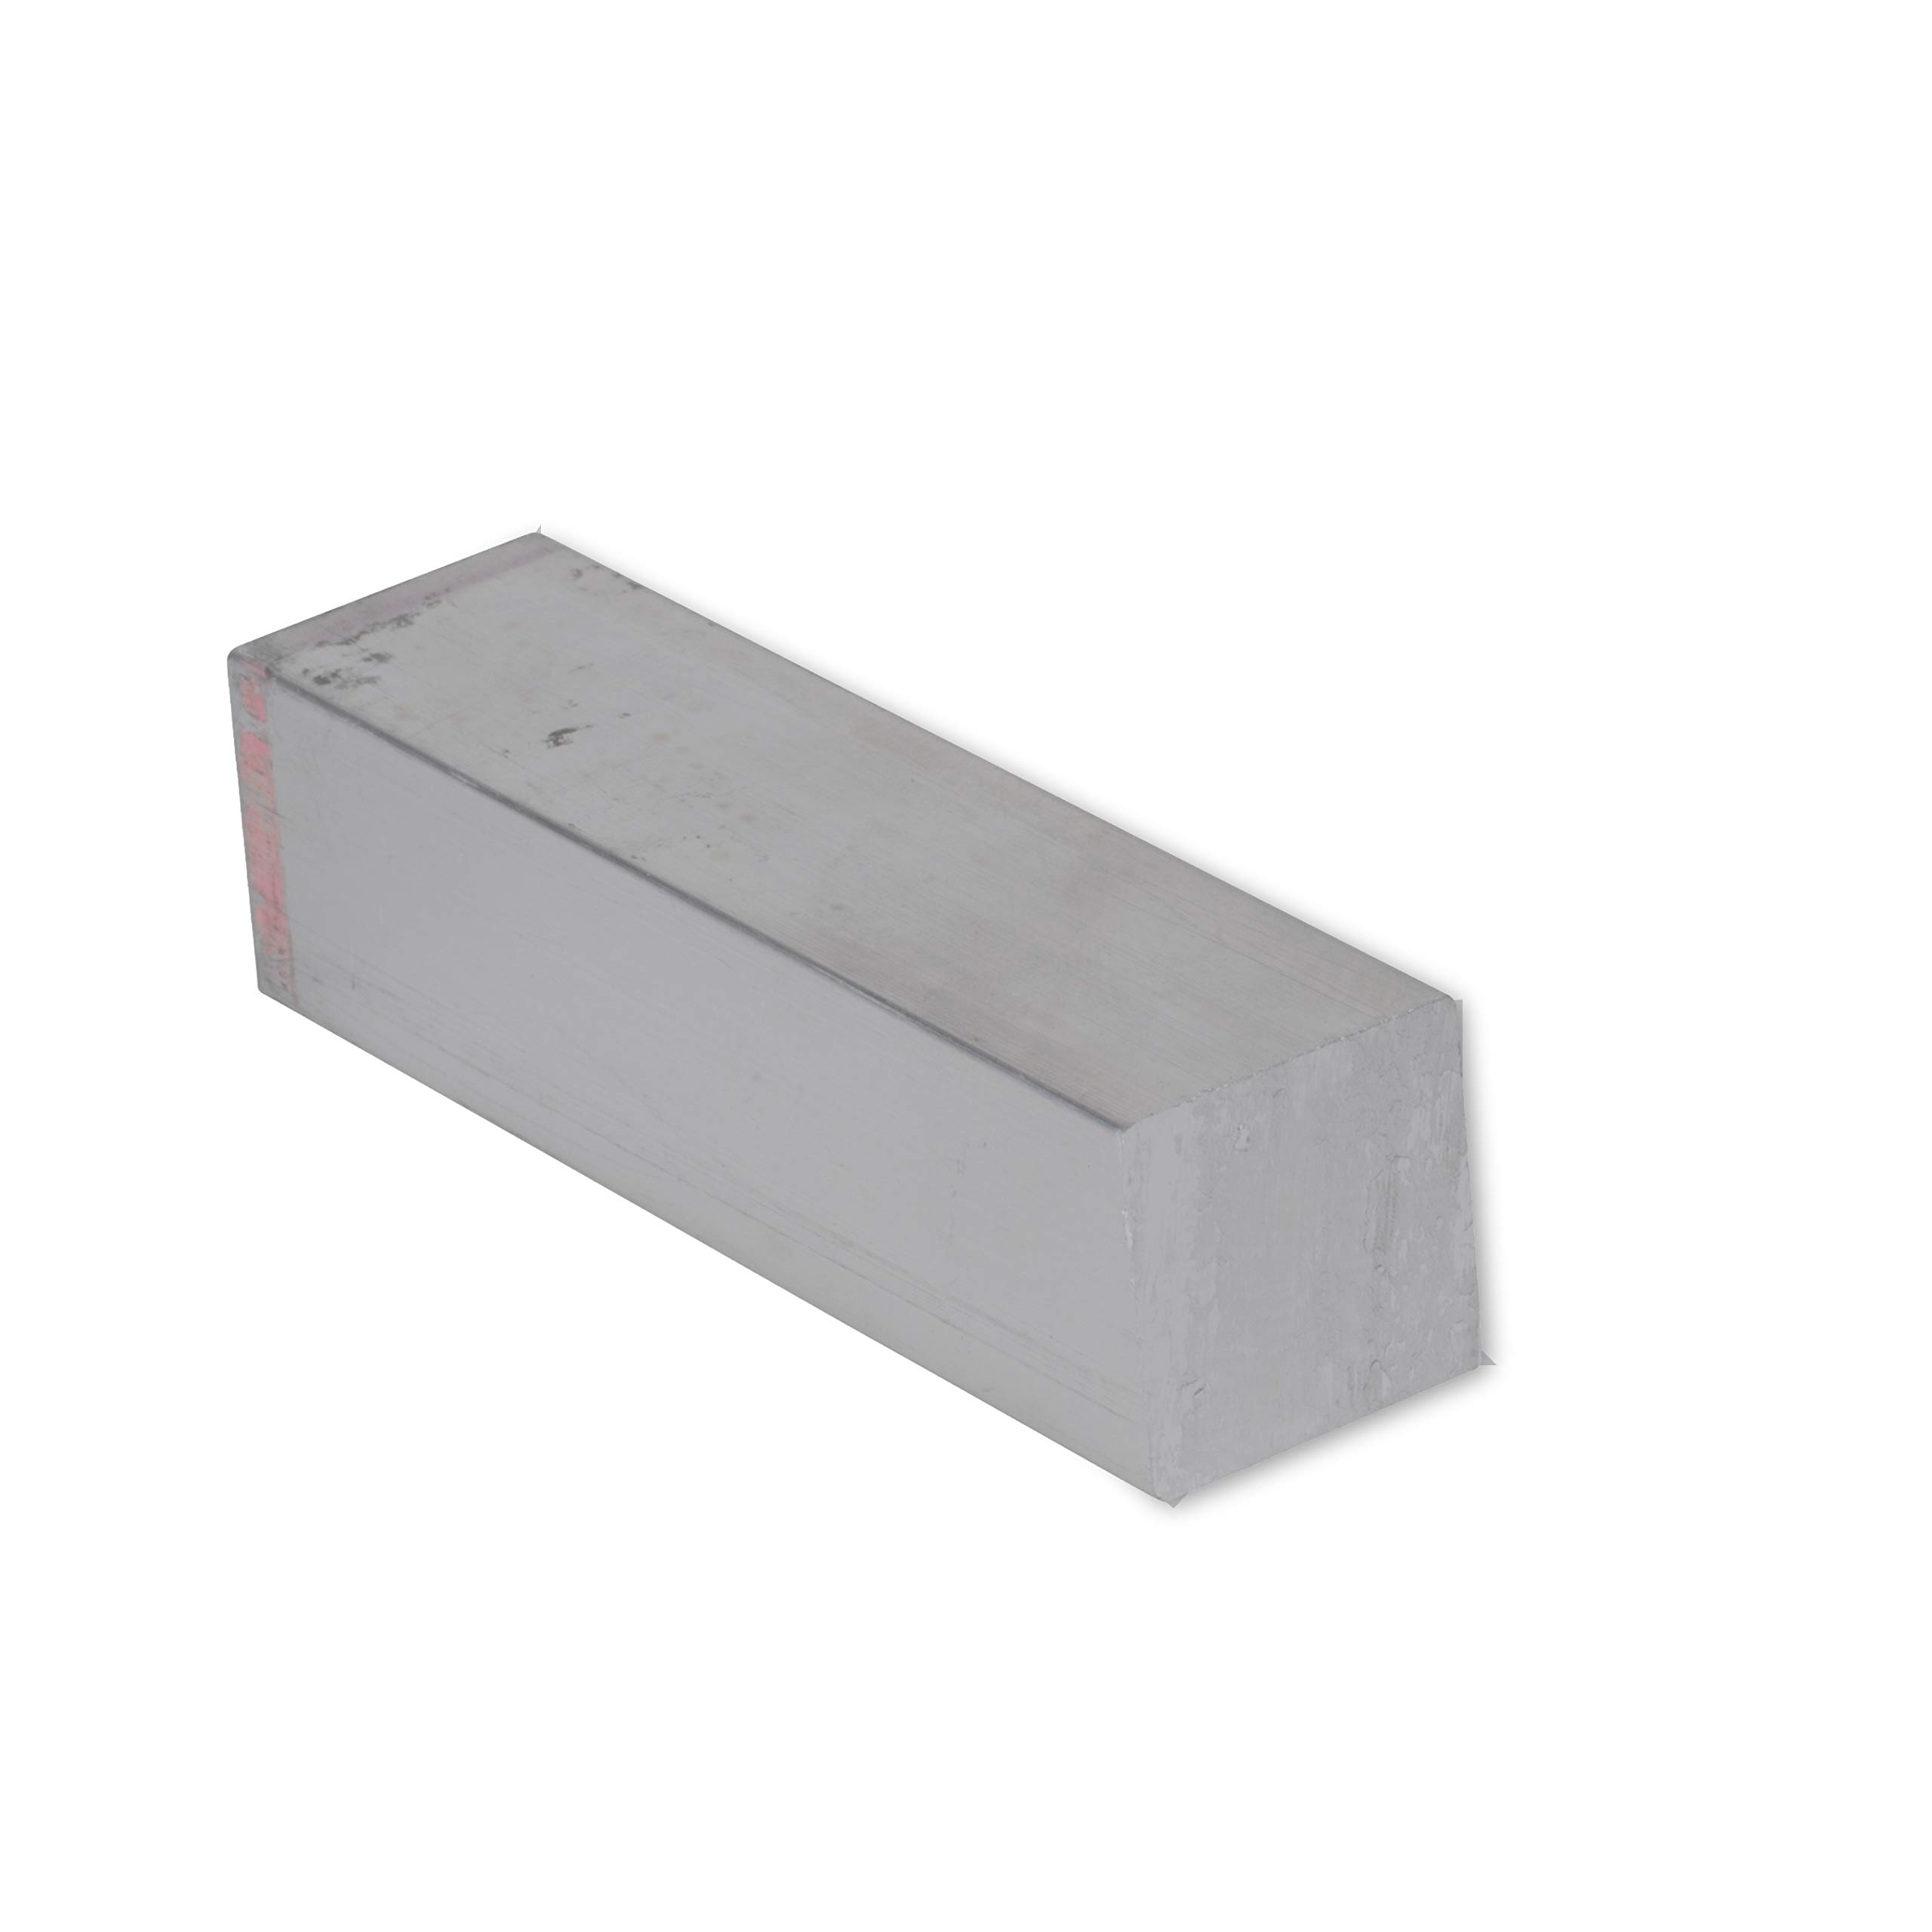 "1/2"" X 1/2"" Stainless Steel Square Bar, 304 General Purpose Plate, 8"" Length, Mill Stock, 0.5 inch Thick"